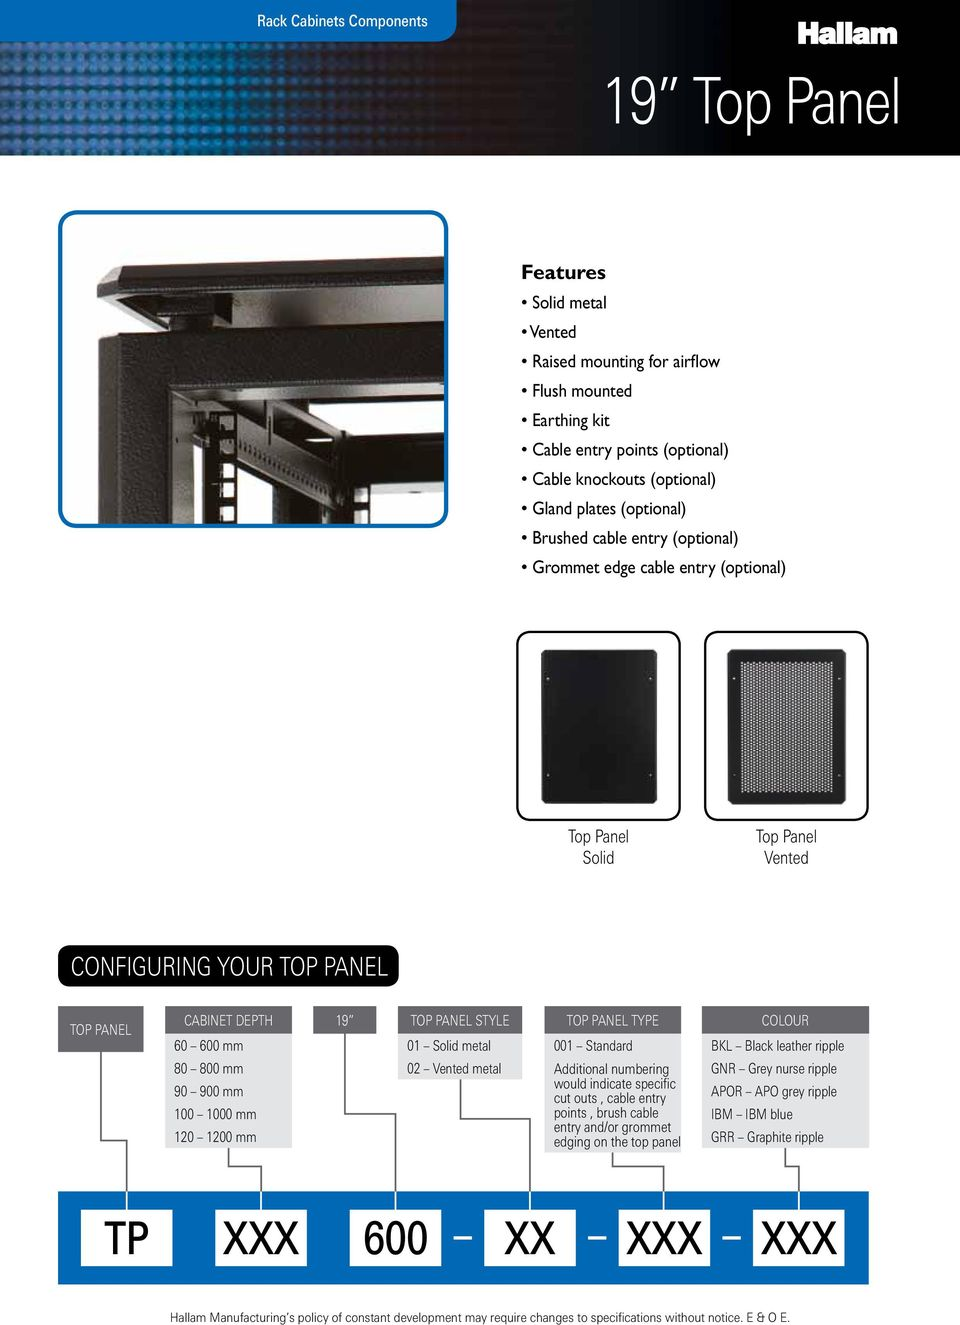 PANEL CABINET DEPTH 60 600 mm 80 800 mm 90 900 mm 100 1000 mm 120 1200 mm 19 TOP PANEL STYLE 01 Solid metal 02 Vented metal TOP PANEL TYPE 001